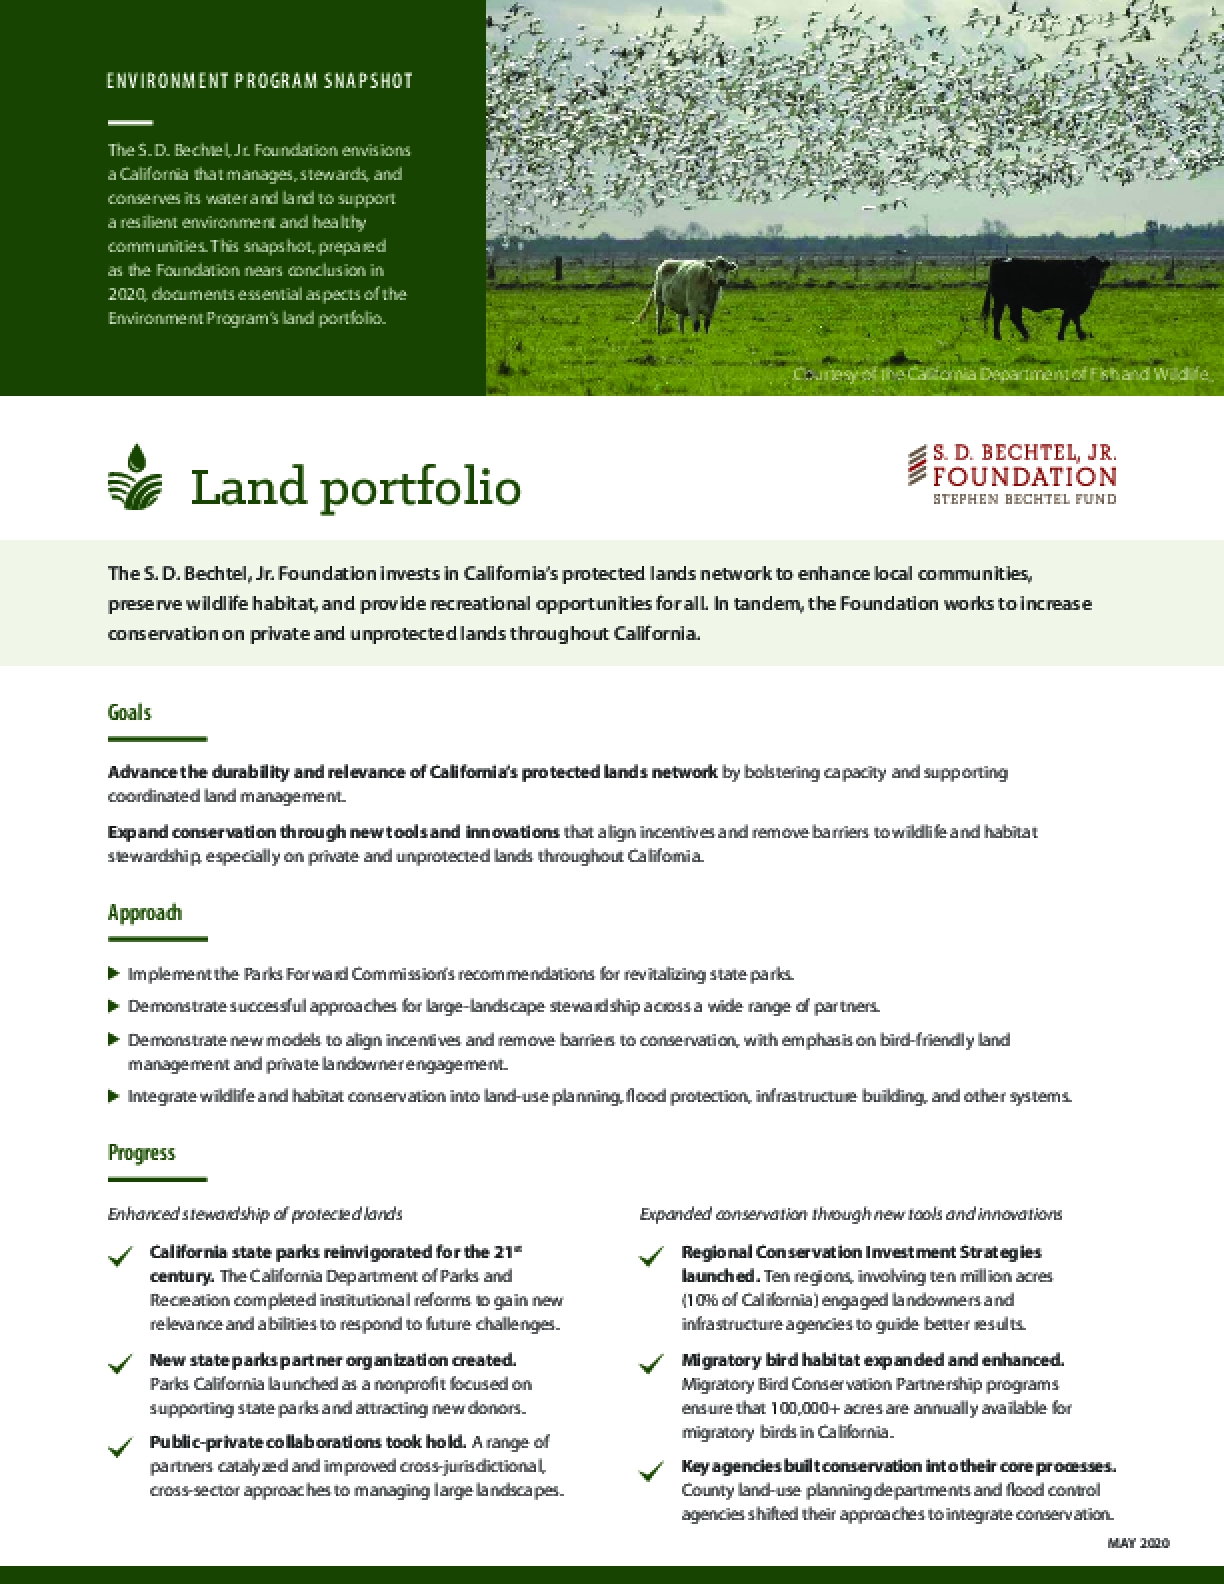 Environment Program Snapshot: Land Portfolio